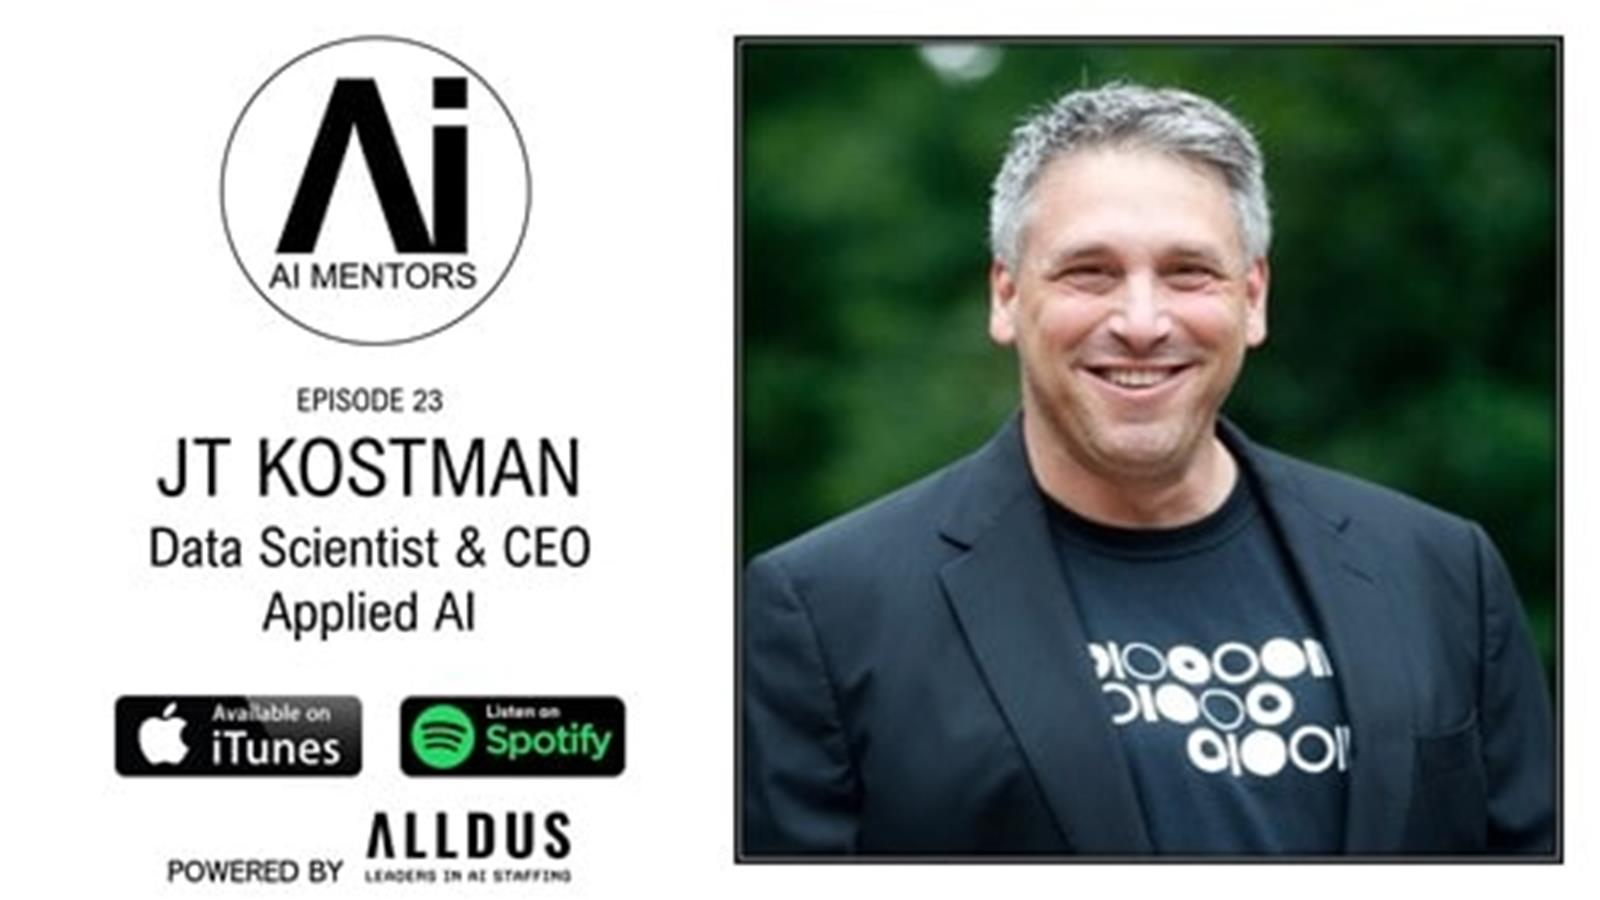 Ai Mentors E23 Jt Kostman Data Scientist And Ceo At Applied Ai Images, Photos, Reviews